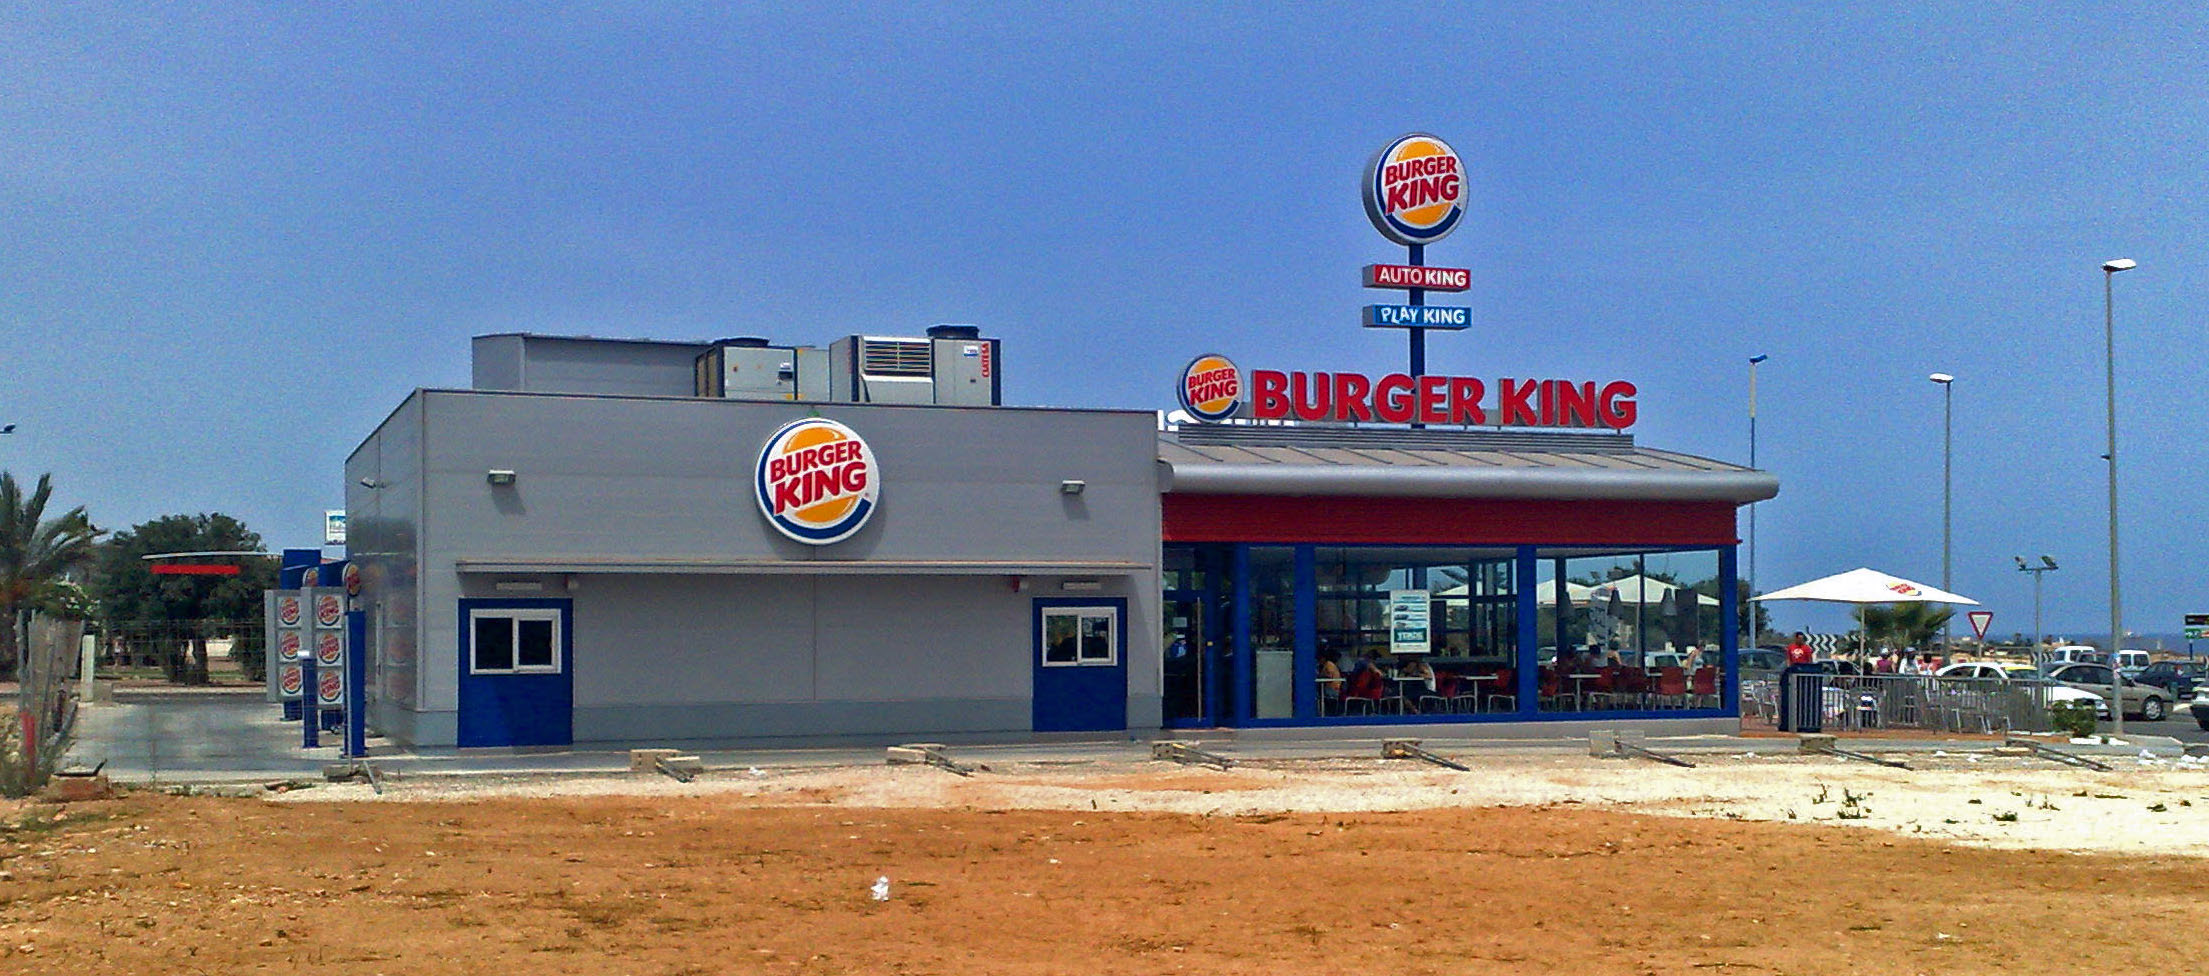 Burger King Head Office South Africa Best Burger 2017